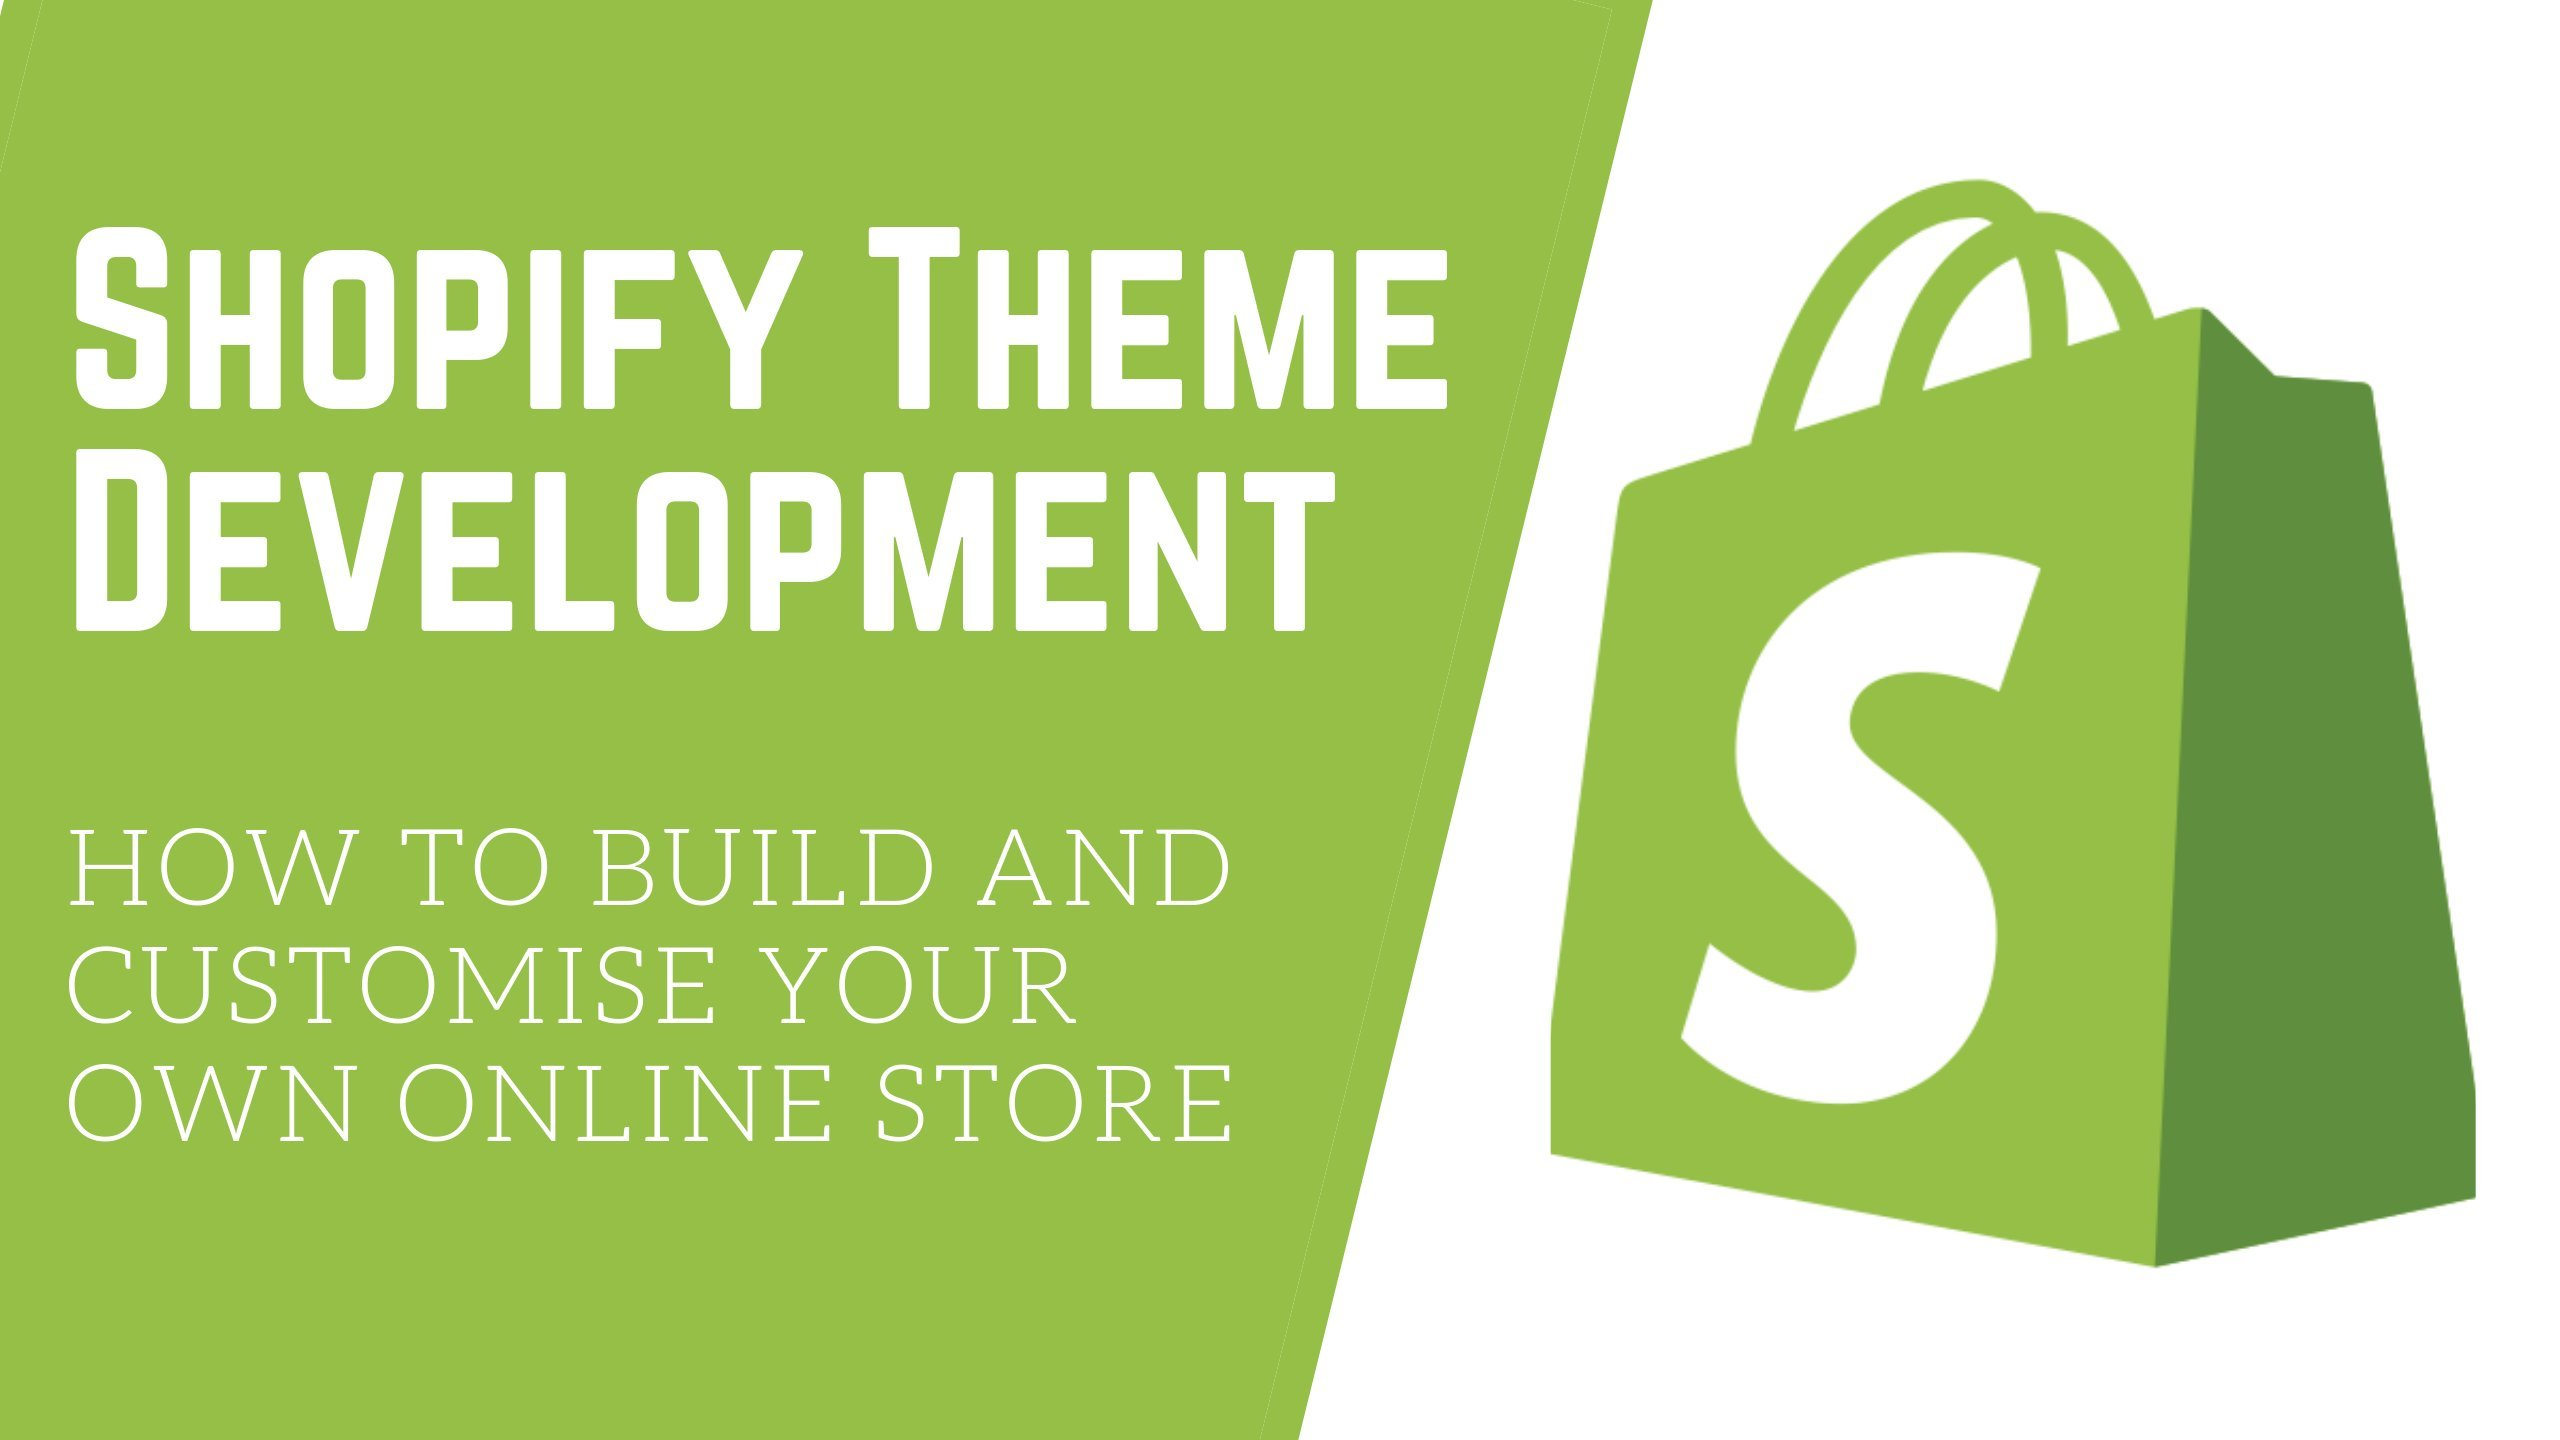 Shopify Theme Development: Build and Customise Your Own